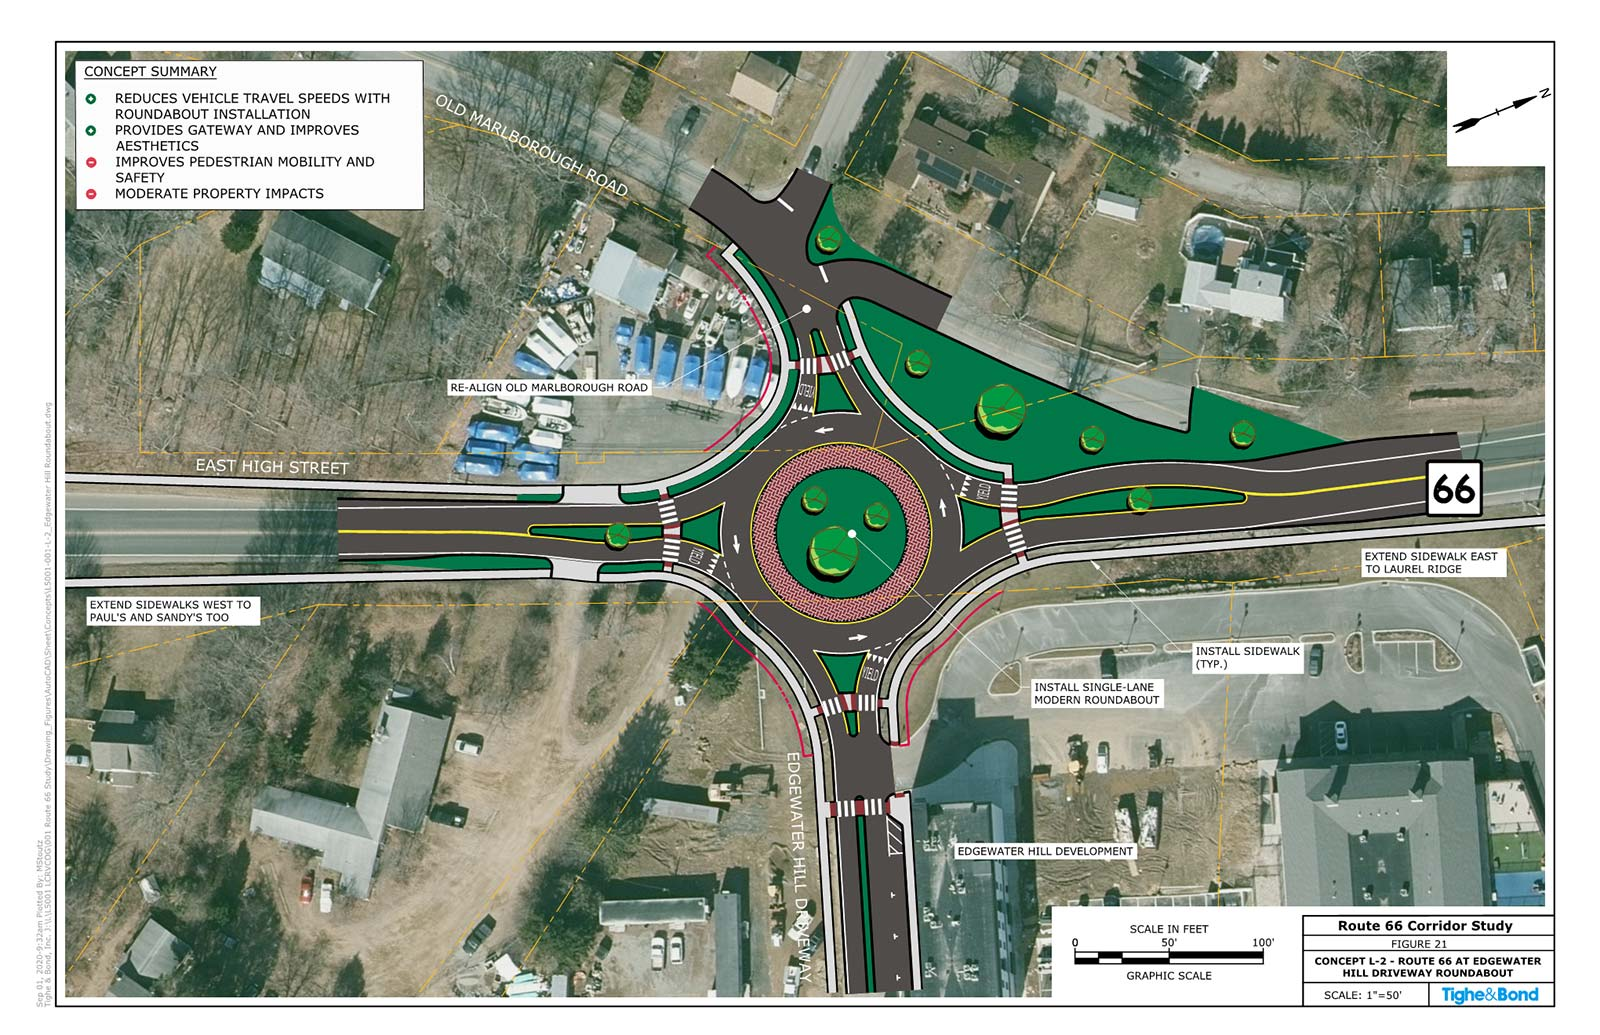 Route 66 at Edgewater Hill Driveway Modern Roundabout (Concept L-2). Route 66 Transportation Study, Portland and East Hampton, CT.